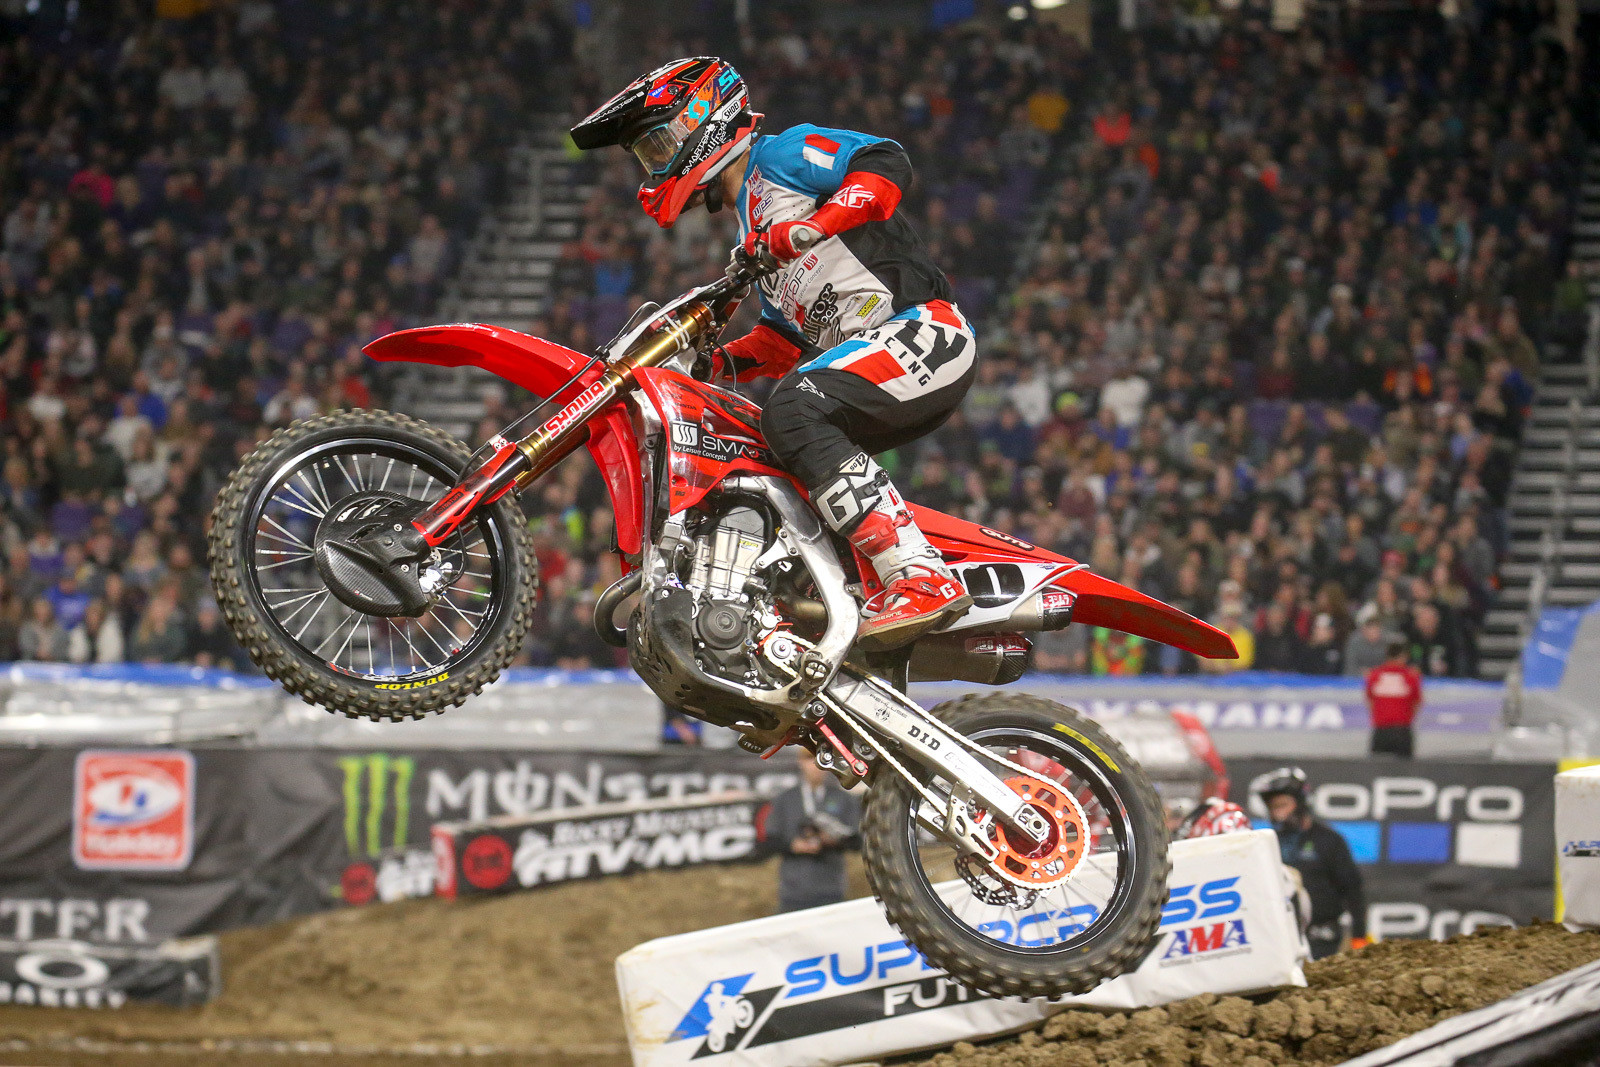 Justin Brayton cleaned up in the second 450 heat. He went nearly wire-to-wire on this one, after taking over the lead from Justin Bogle on the second lap.